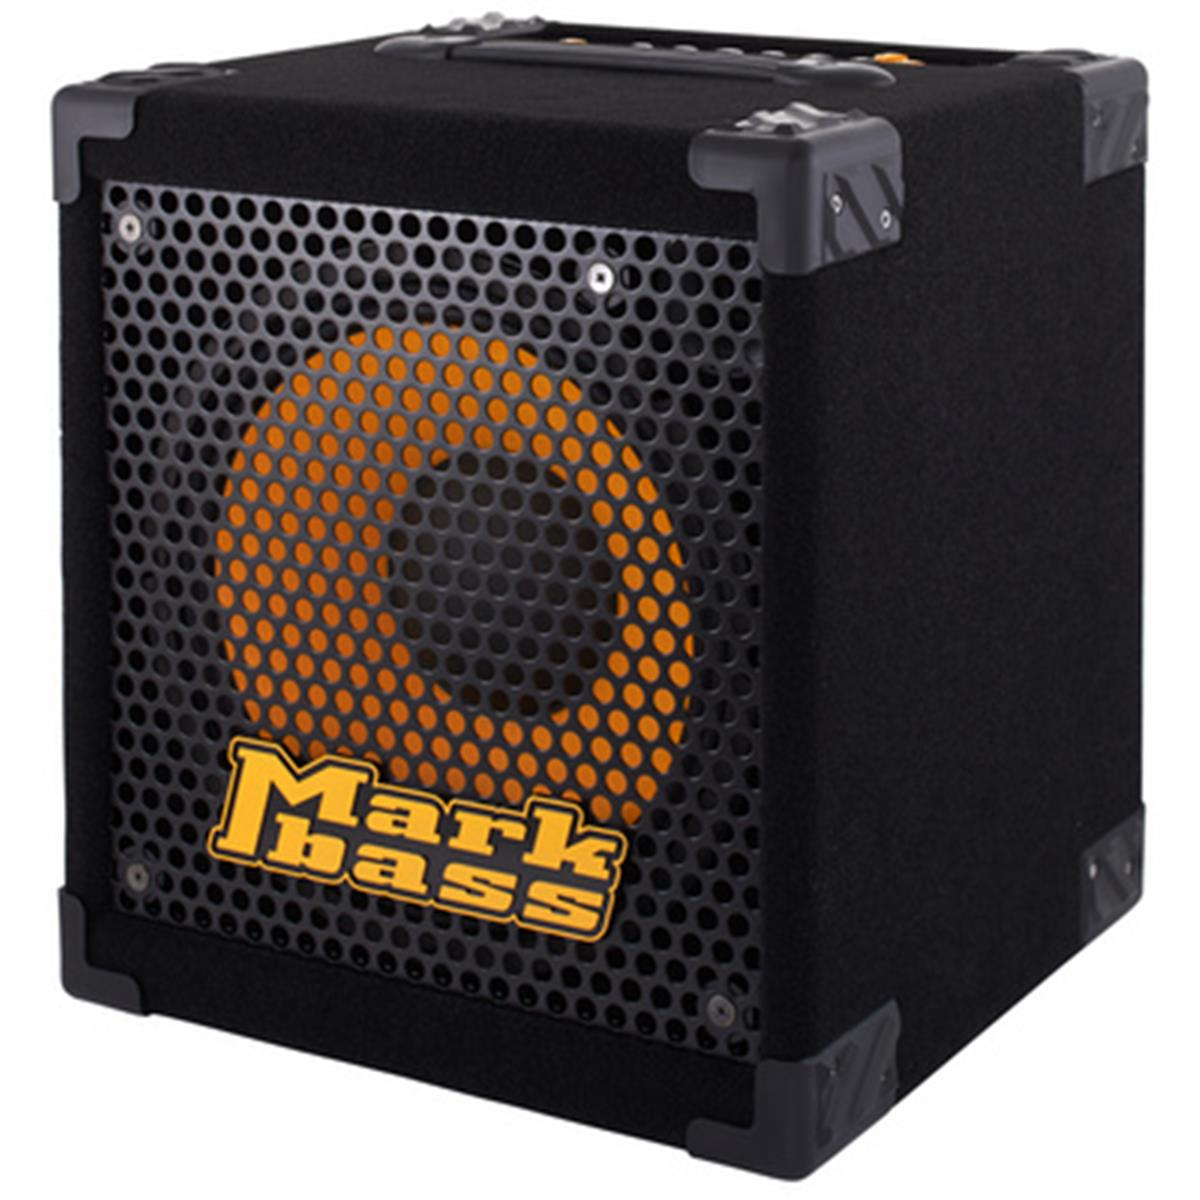 MARKBASS-MINI-CMD-121-P-sku-231